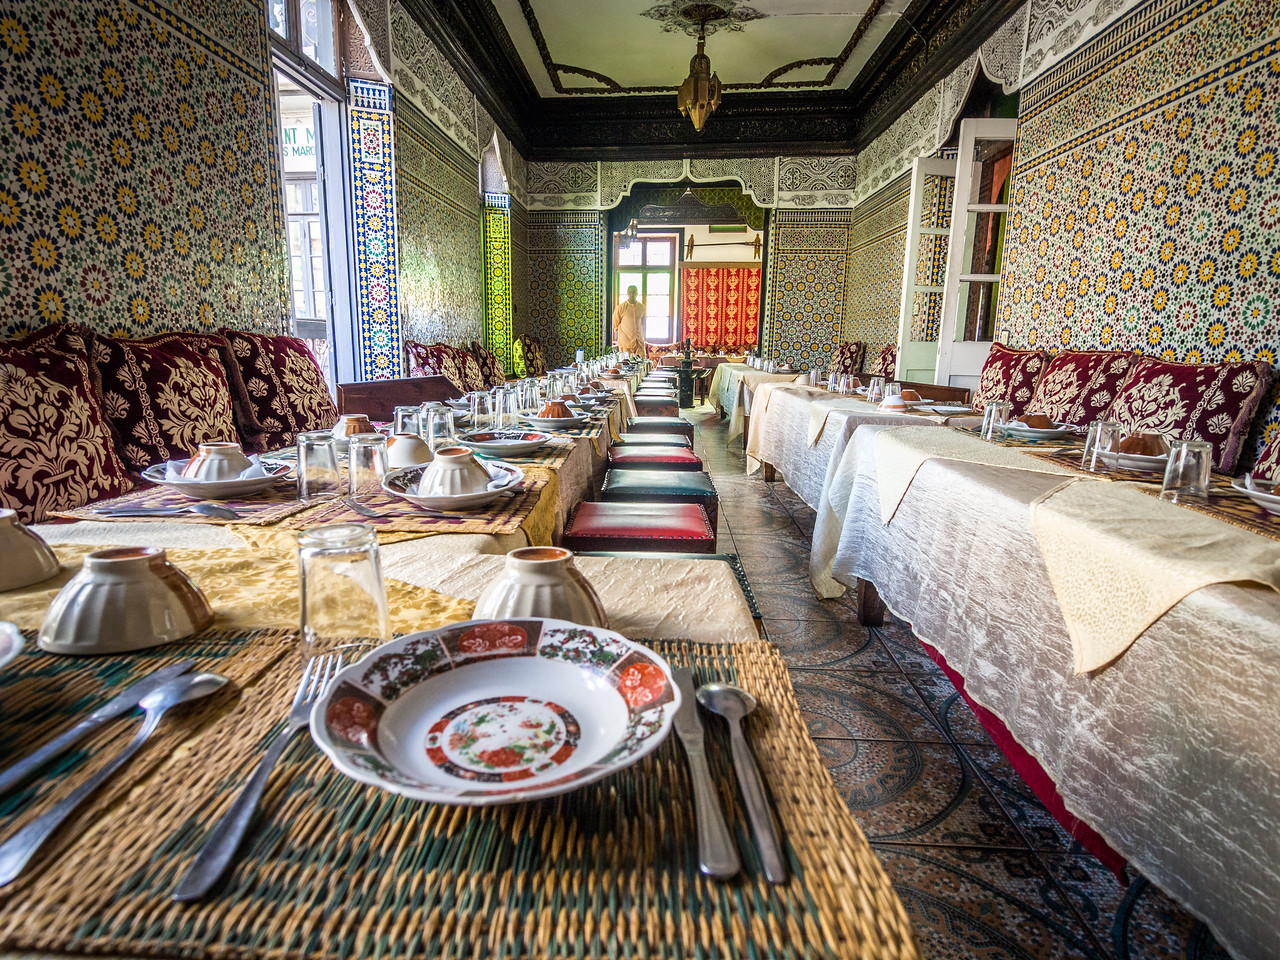 Setting for Dinner, Tangiers, Morocco